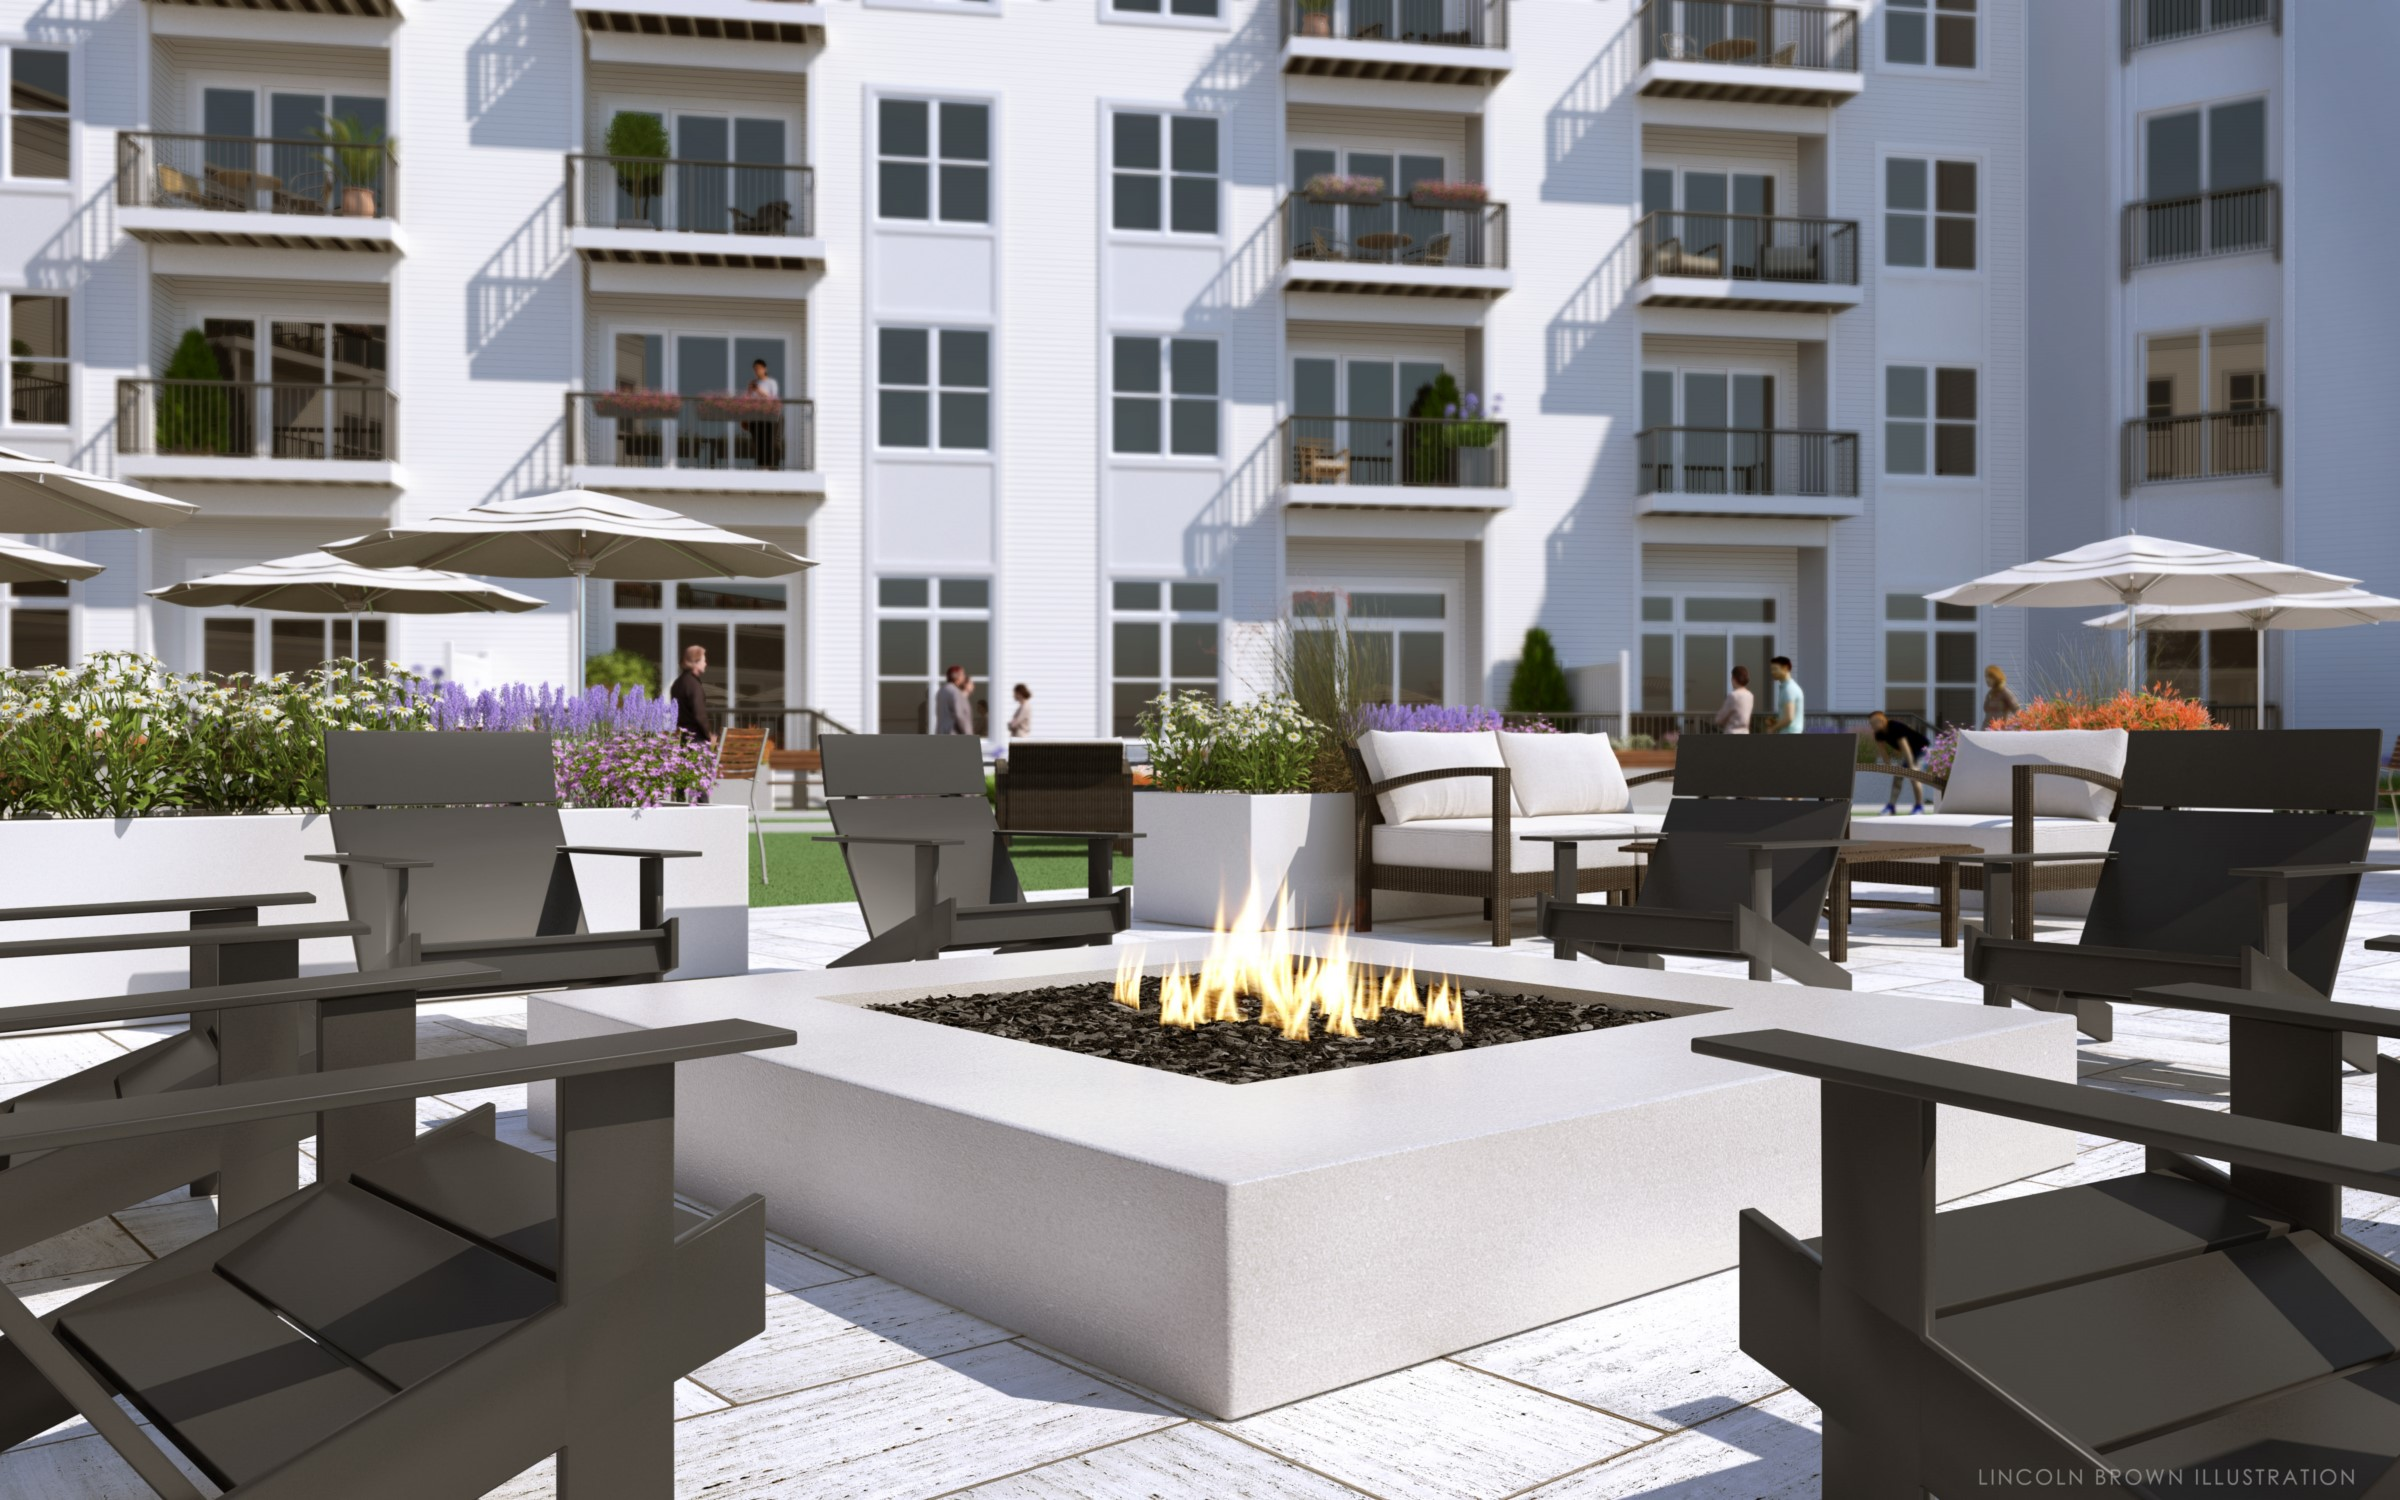 2018-04 Electric City Apartments - Firepit.jpg